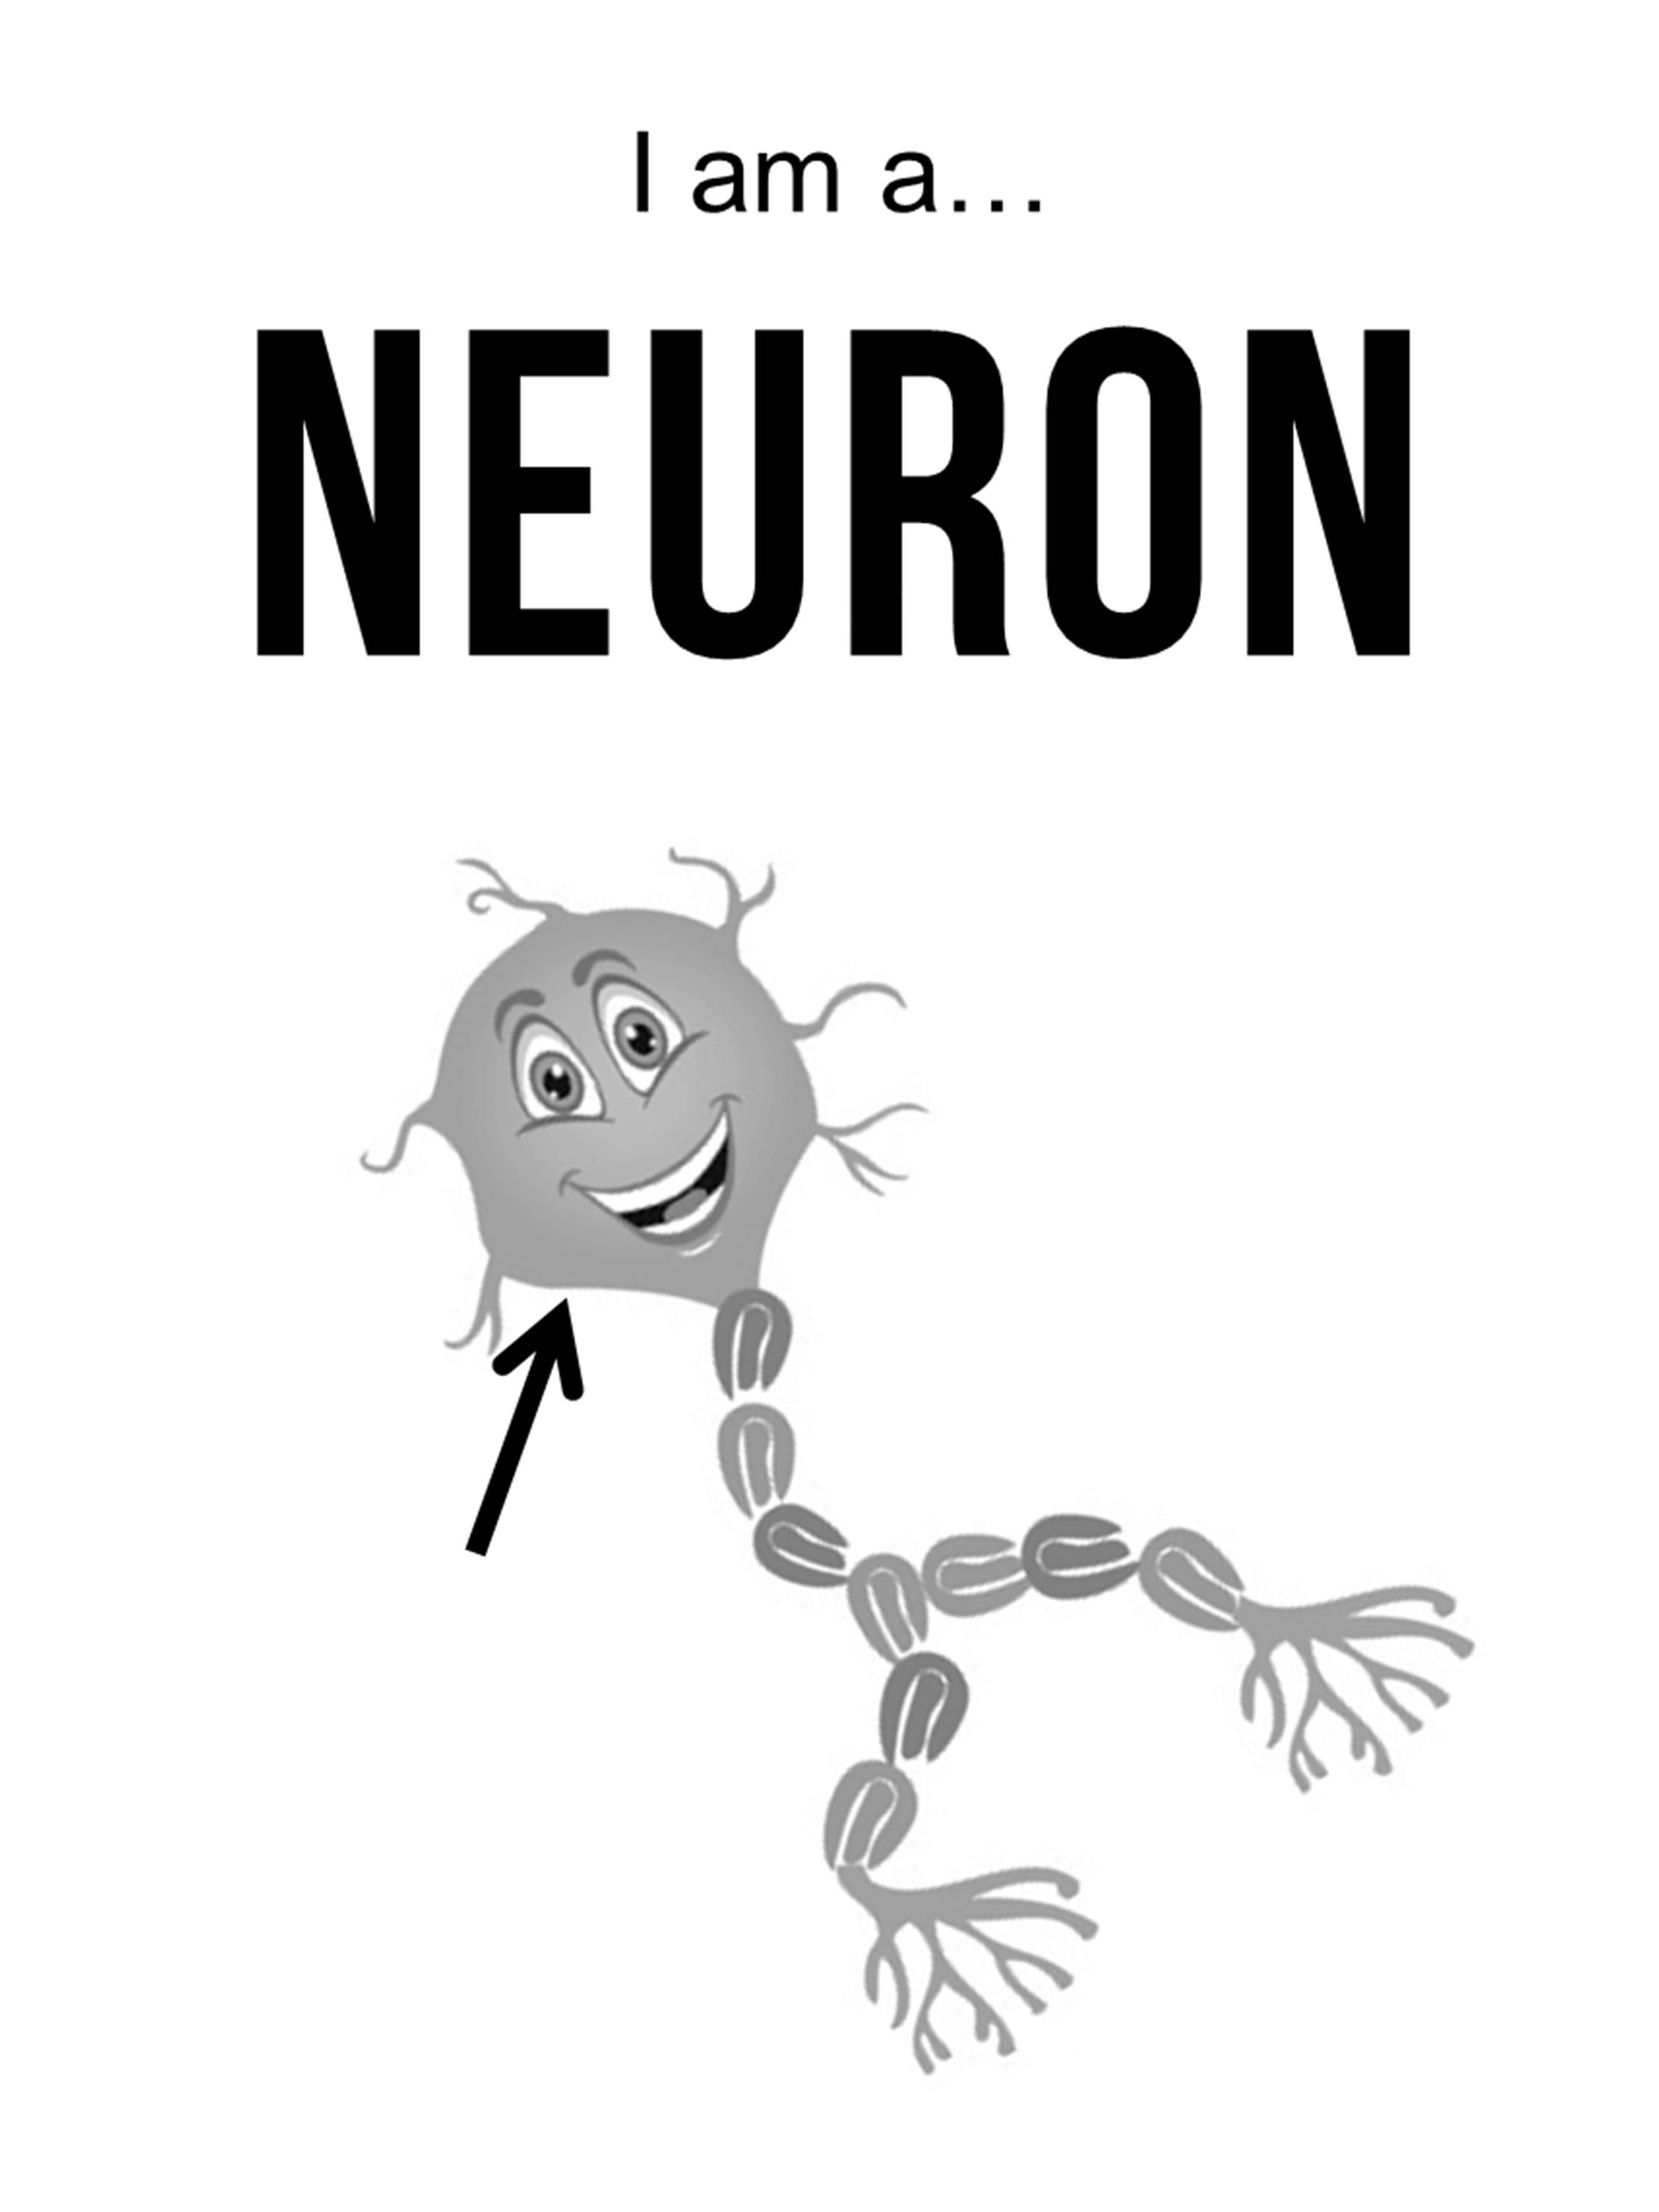 I am a neuron.jpg